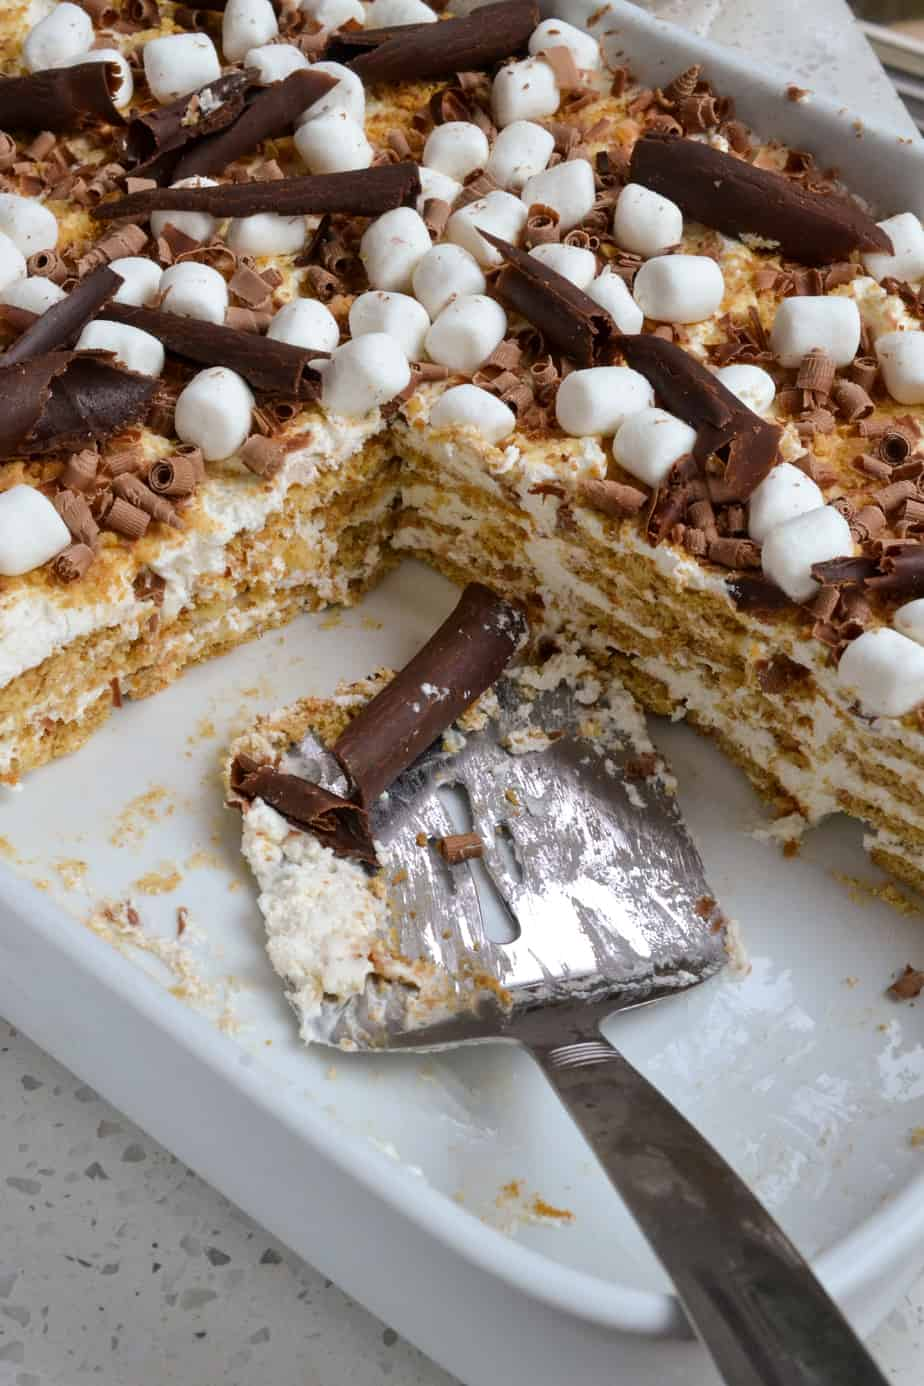 A pan full of Icebox Cake made with graham crackers and whipped cream.